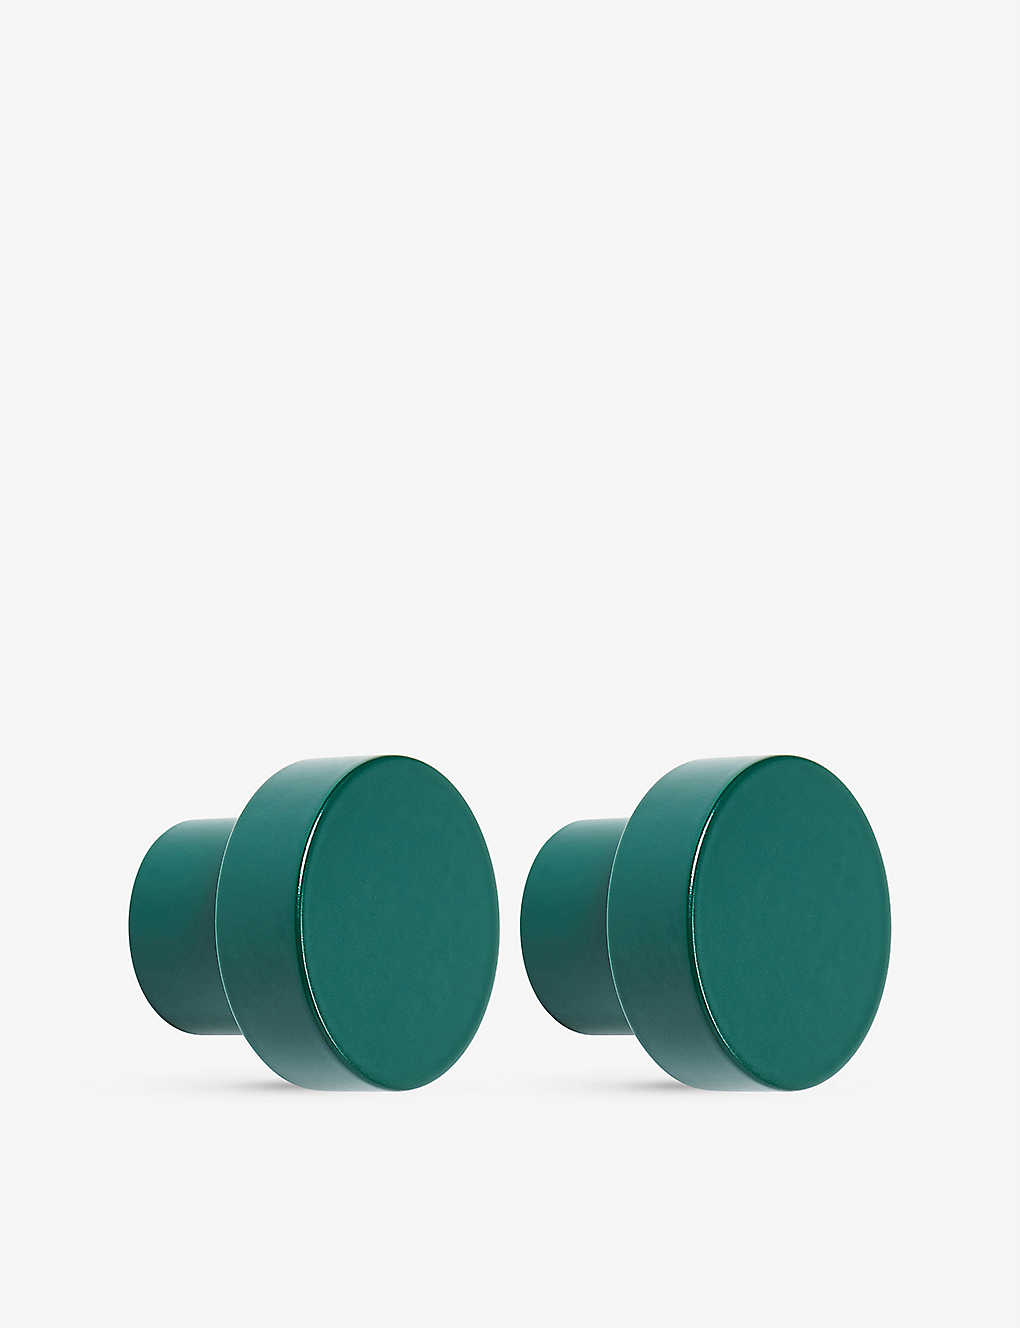 THE CONRAN SHOP: Swarf Hobson knobs set of two